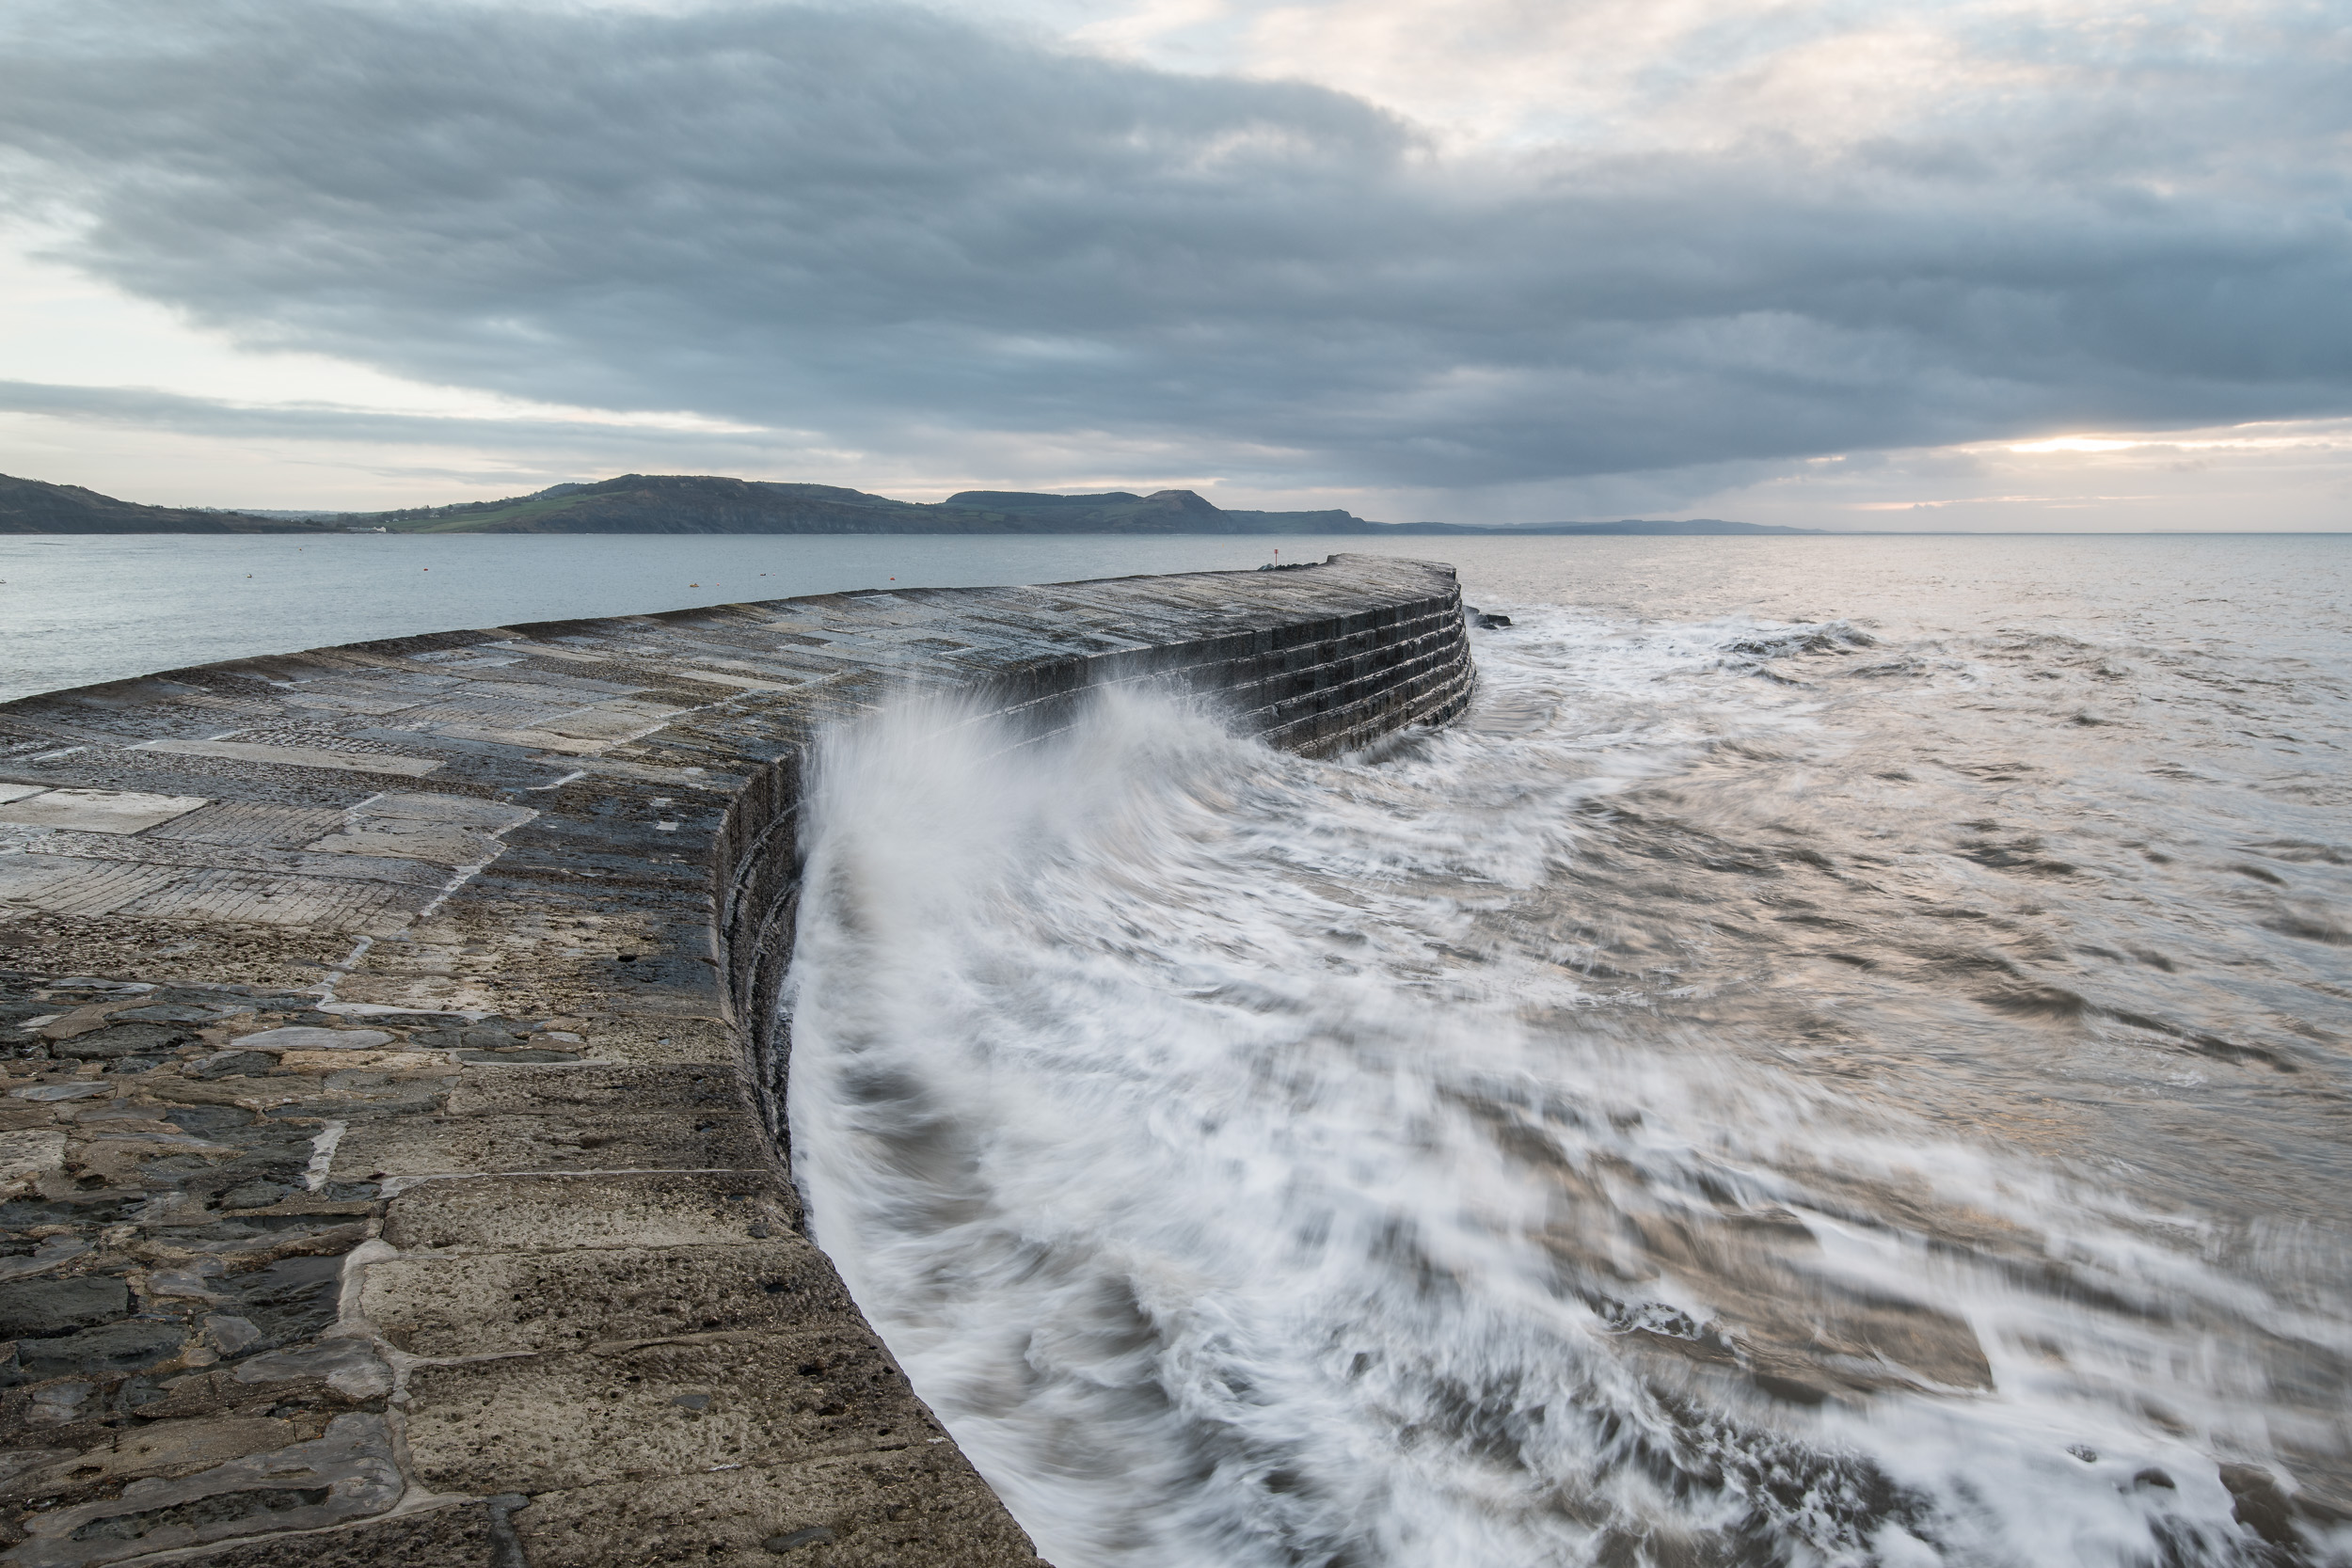 The Harbour Wall at Lyme Regis